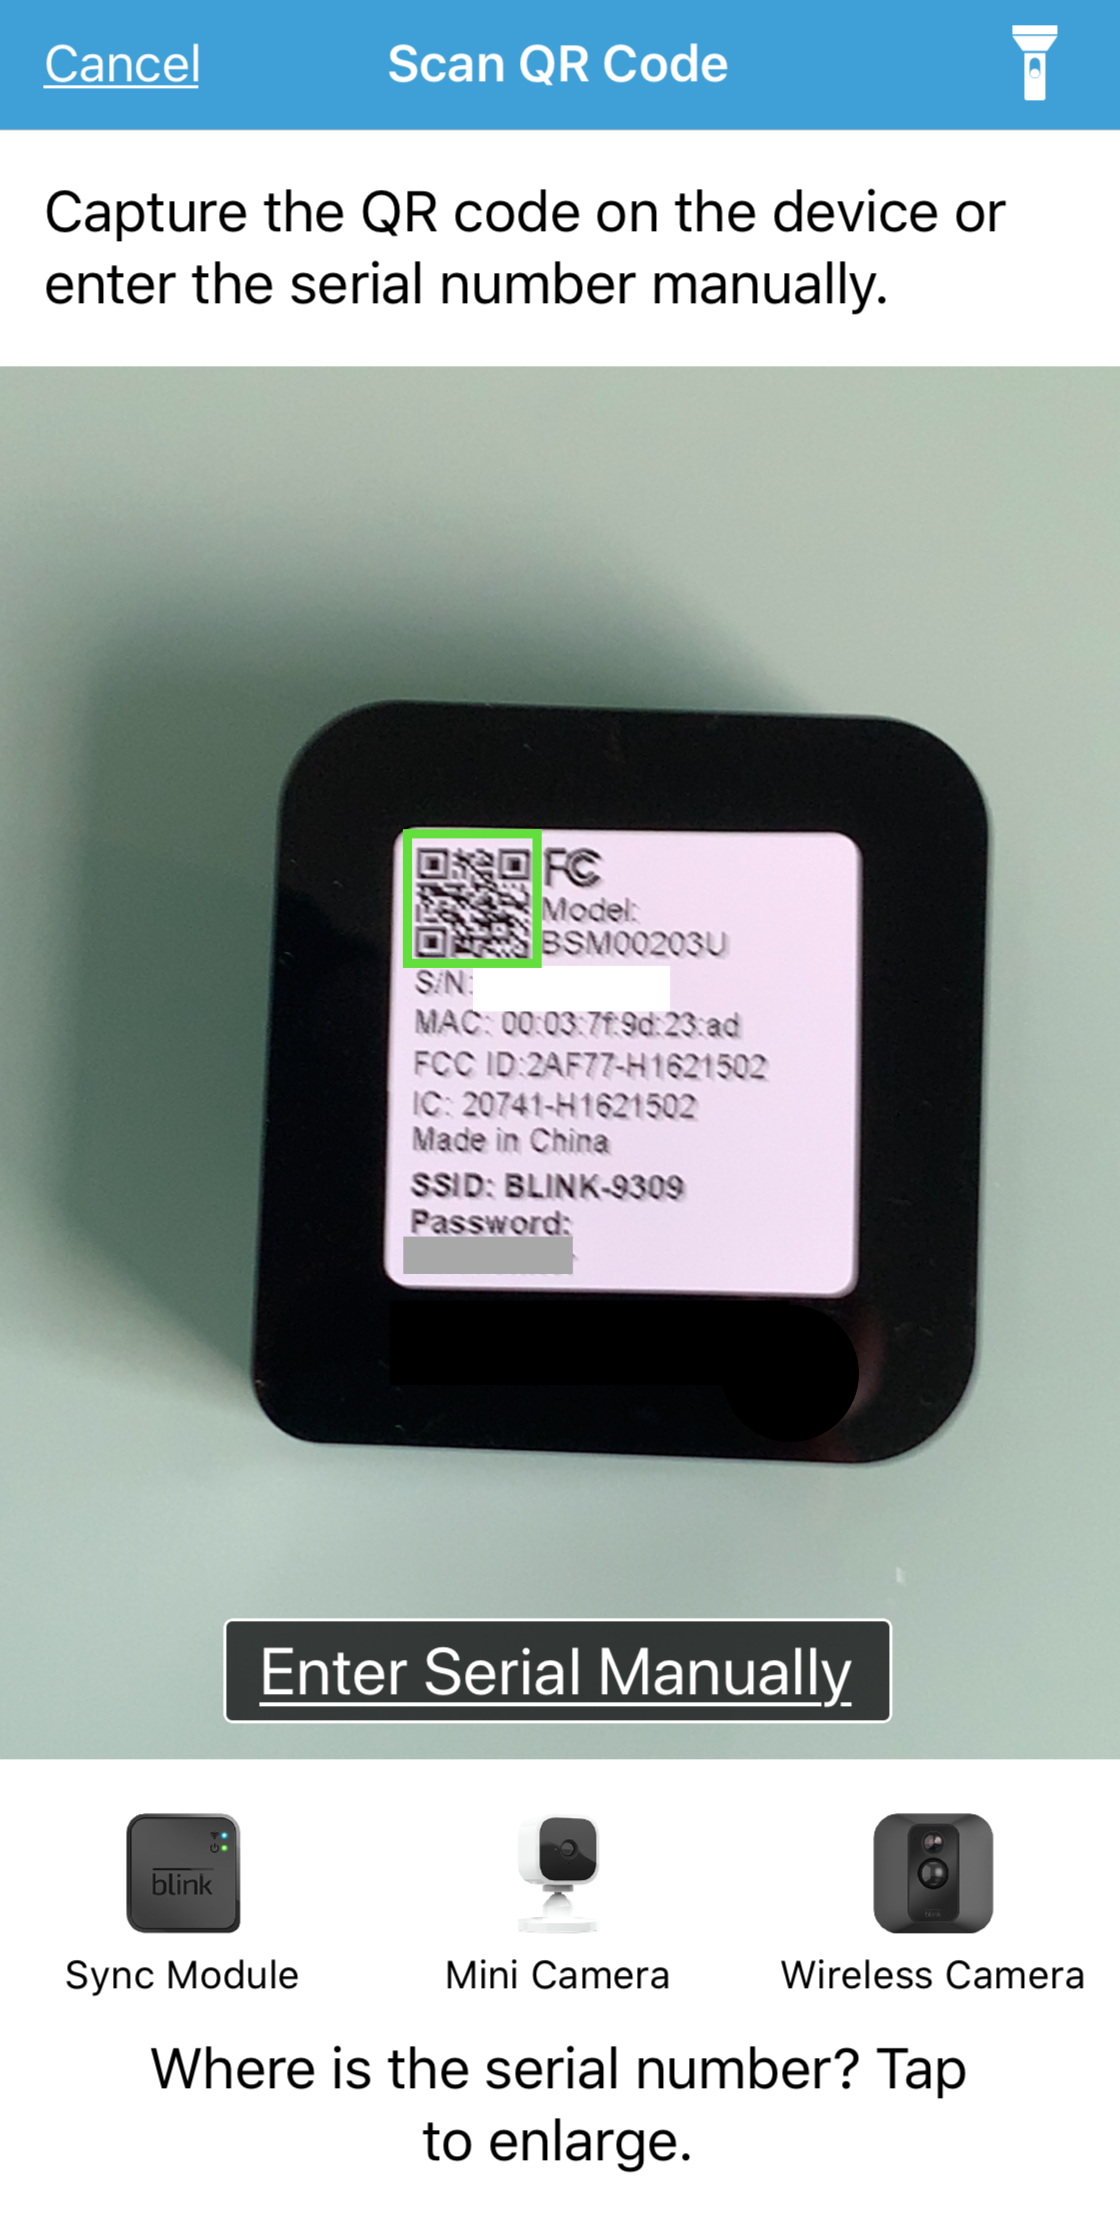 capture QR code screen showing camera view